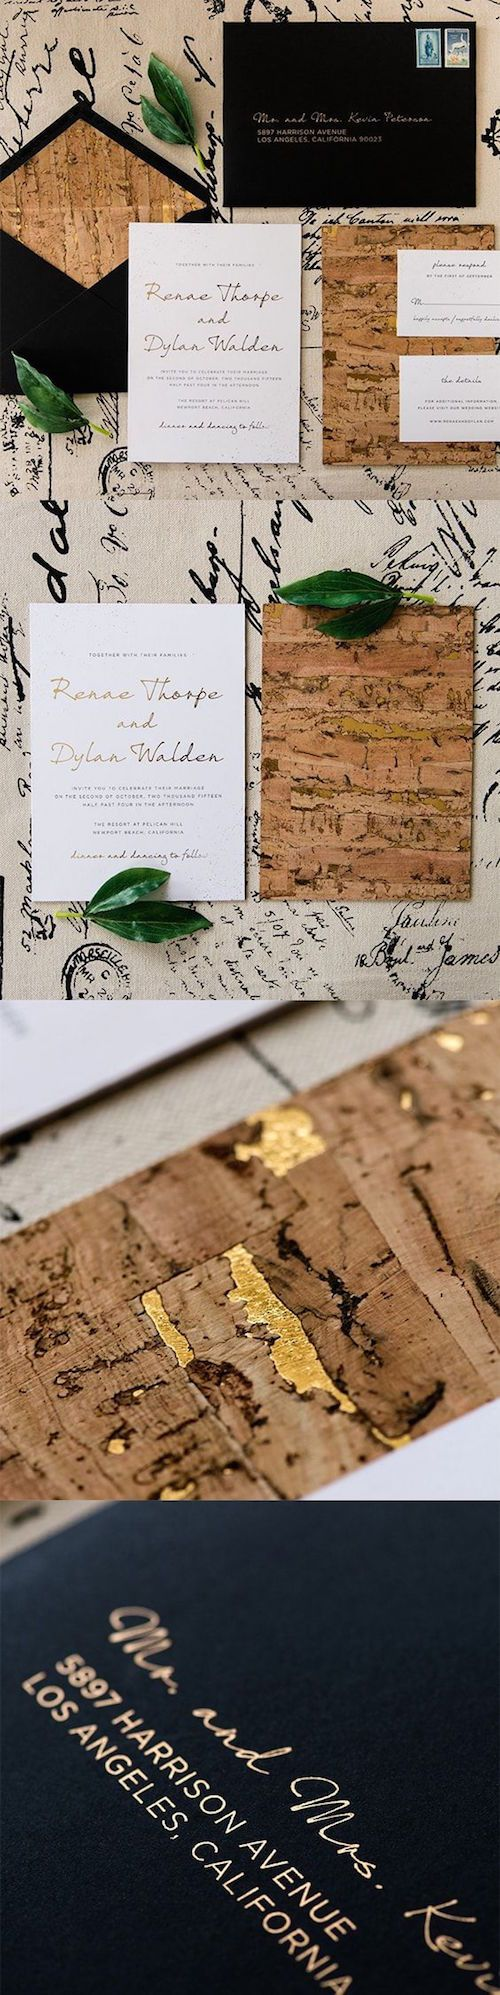 originales sobres forrados para tus de boda de engaging papers